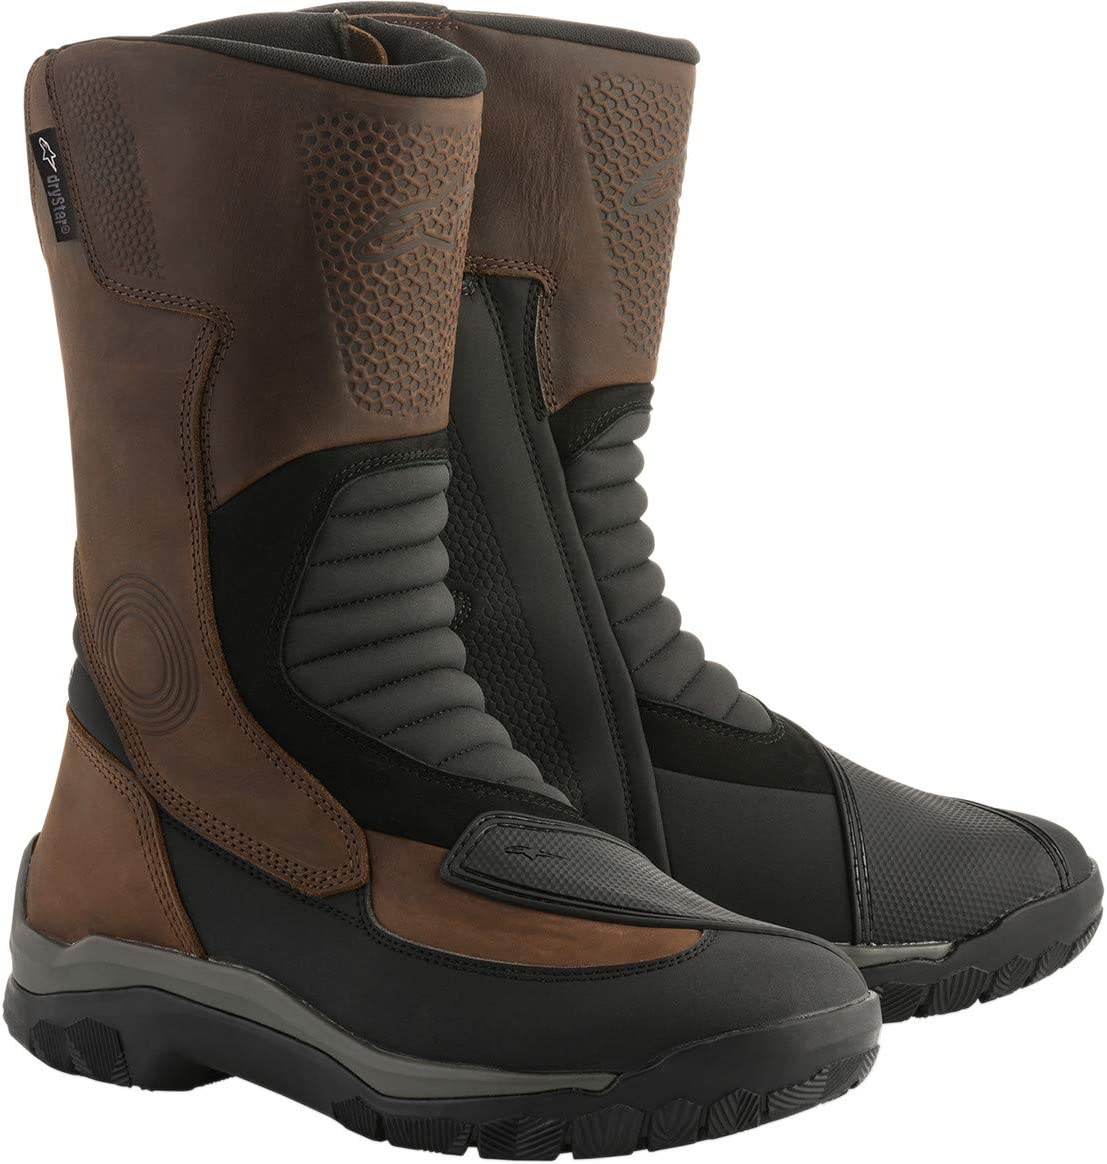 Alpinestars San Jose Mall Men's 2443418-82-9 Boots Size 9 Brown Challenge the lowest price of Japan ☆